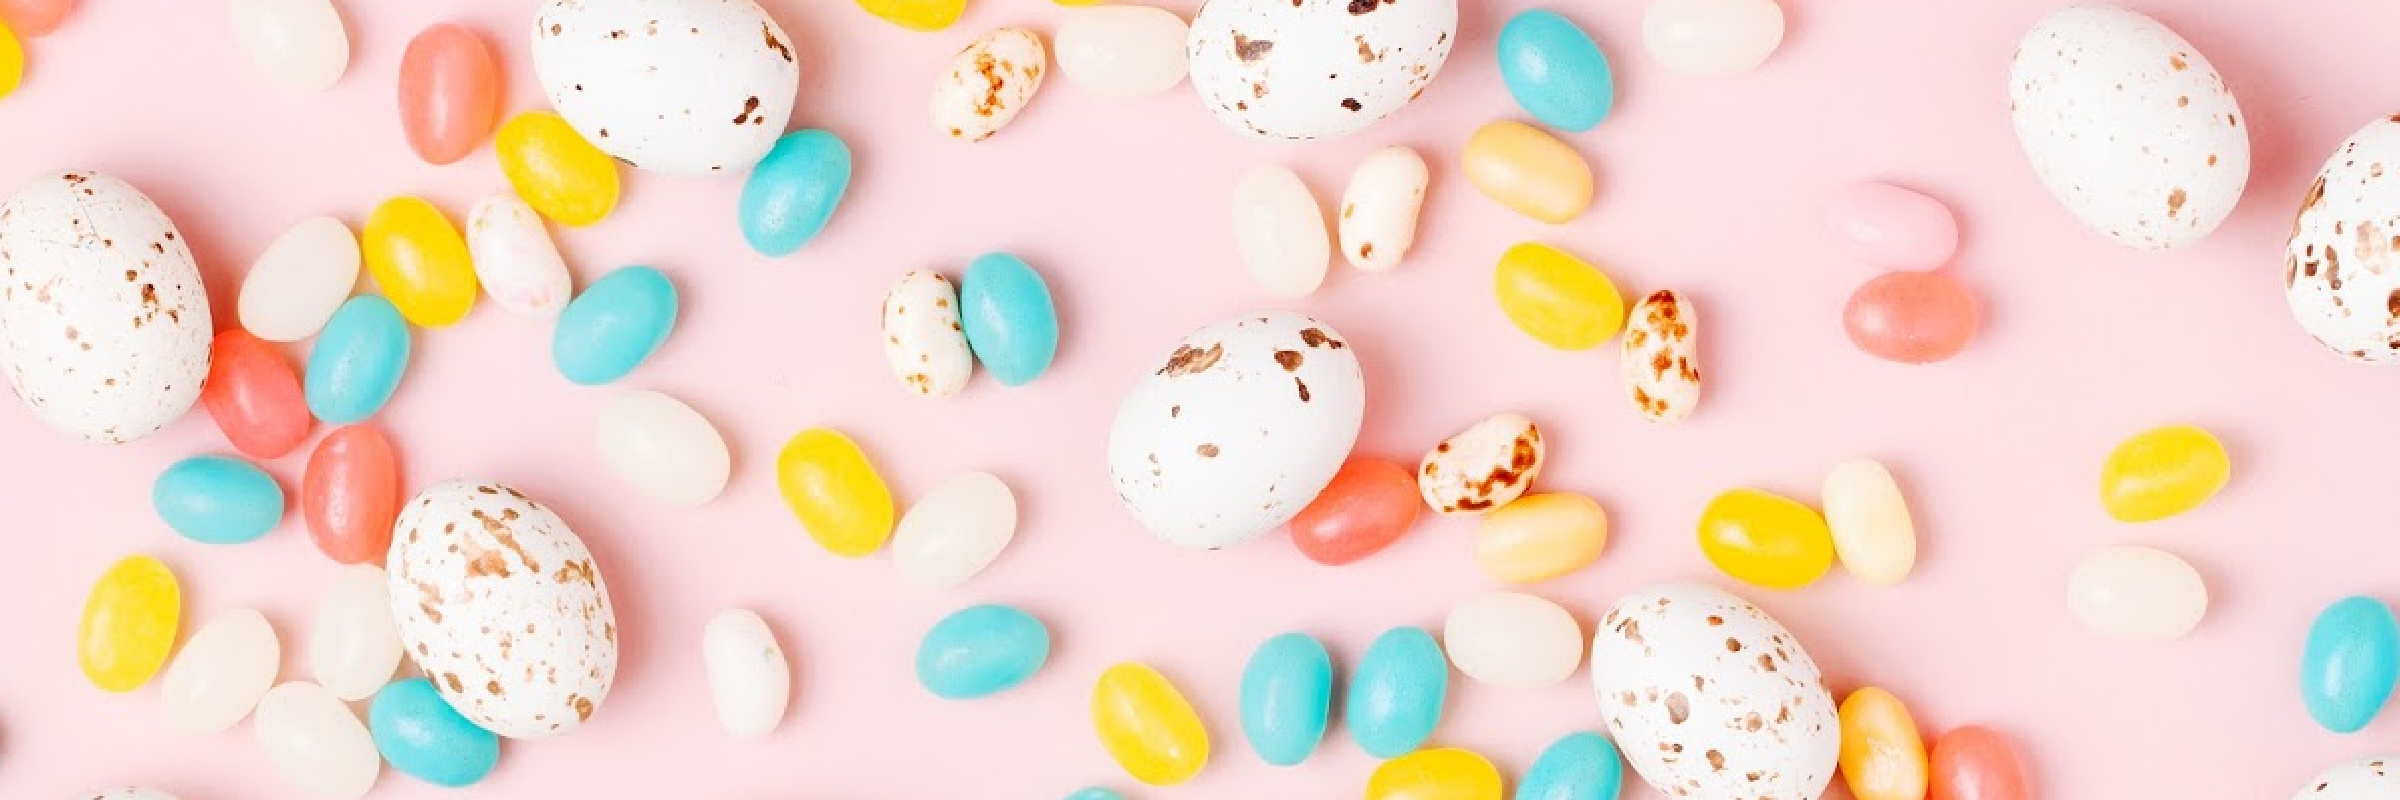 Stylish Candy background.  Easter concept . Flat lay